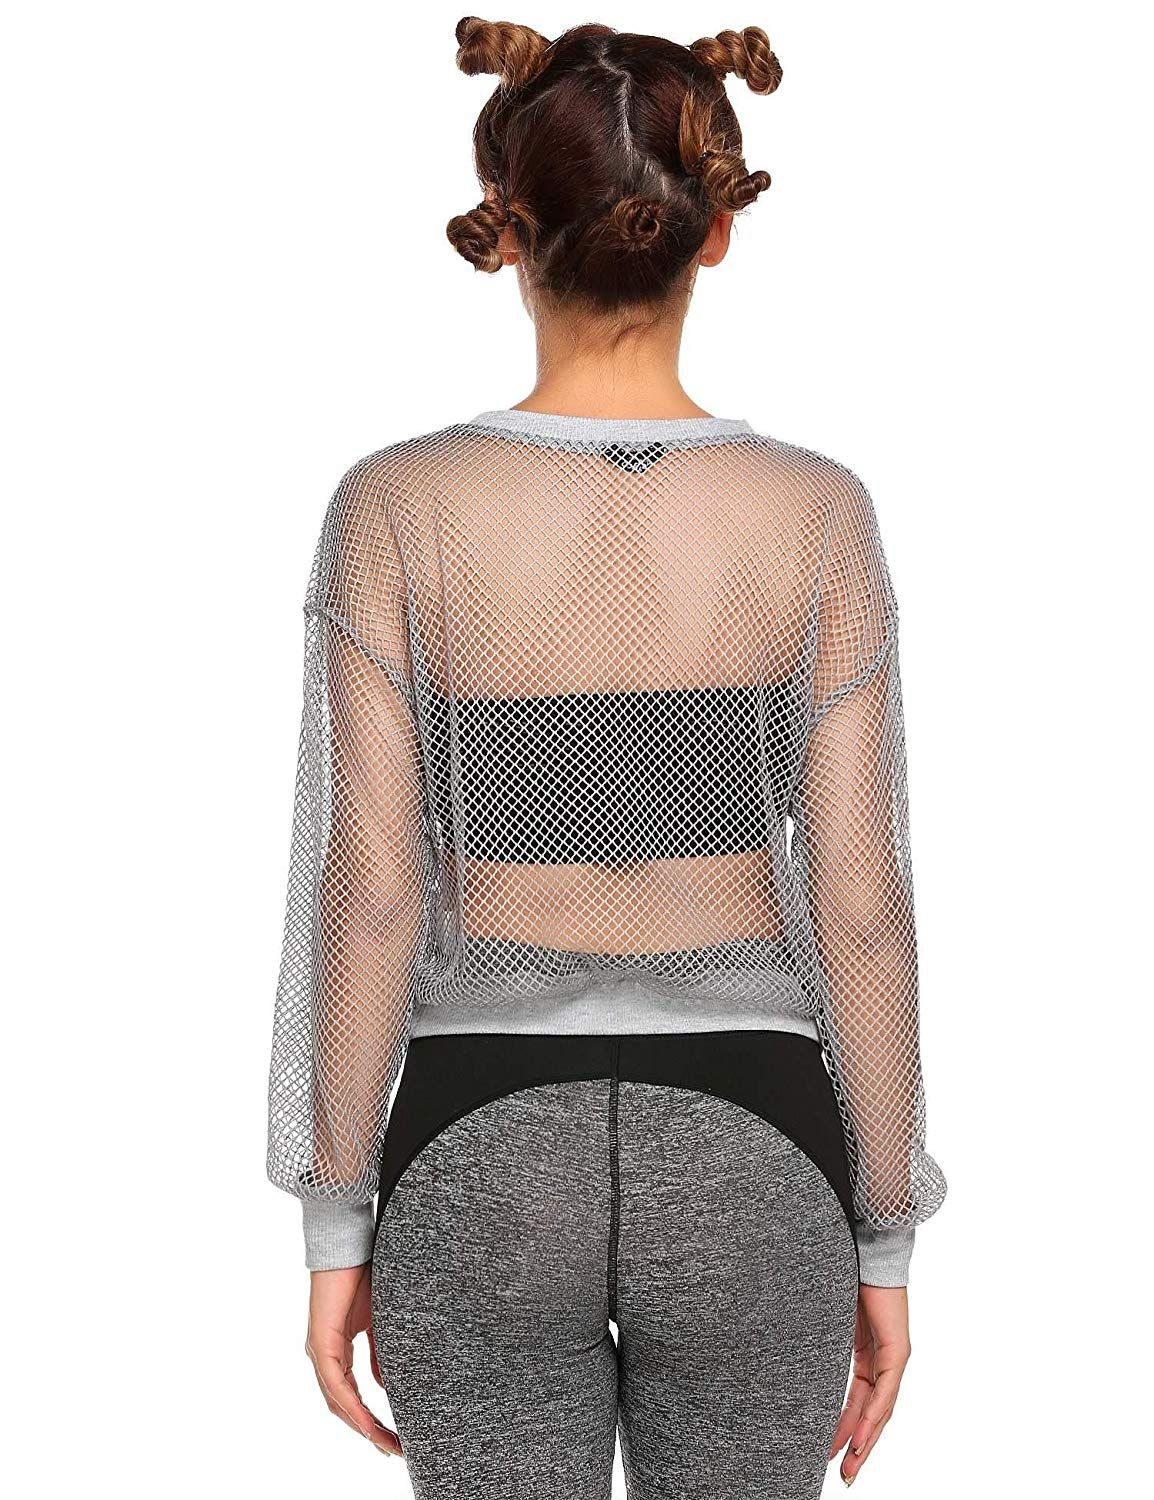 d11a203e27884 Zeagoo Women's Sexy Mesh Shirts Fishnet Long Sleeve See Through Cover Up  Tops at Amazon Women's Clothing store: